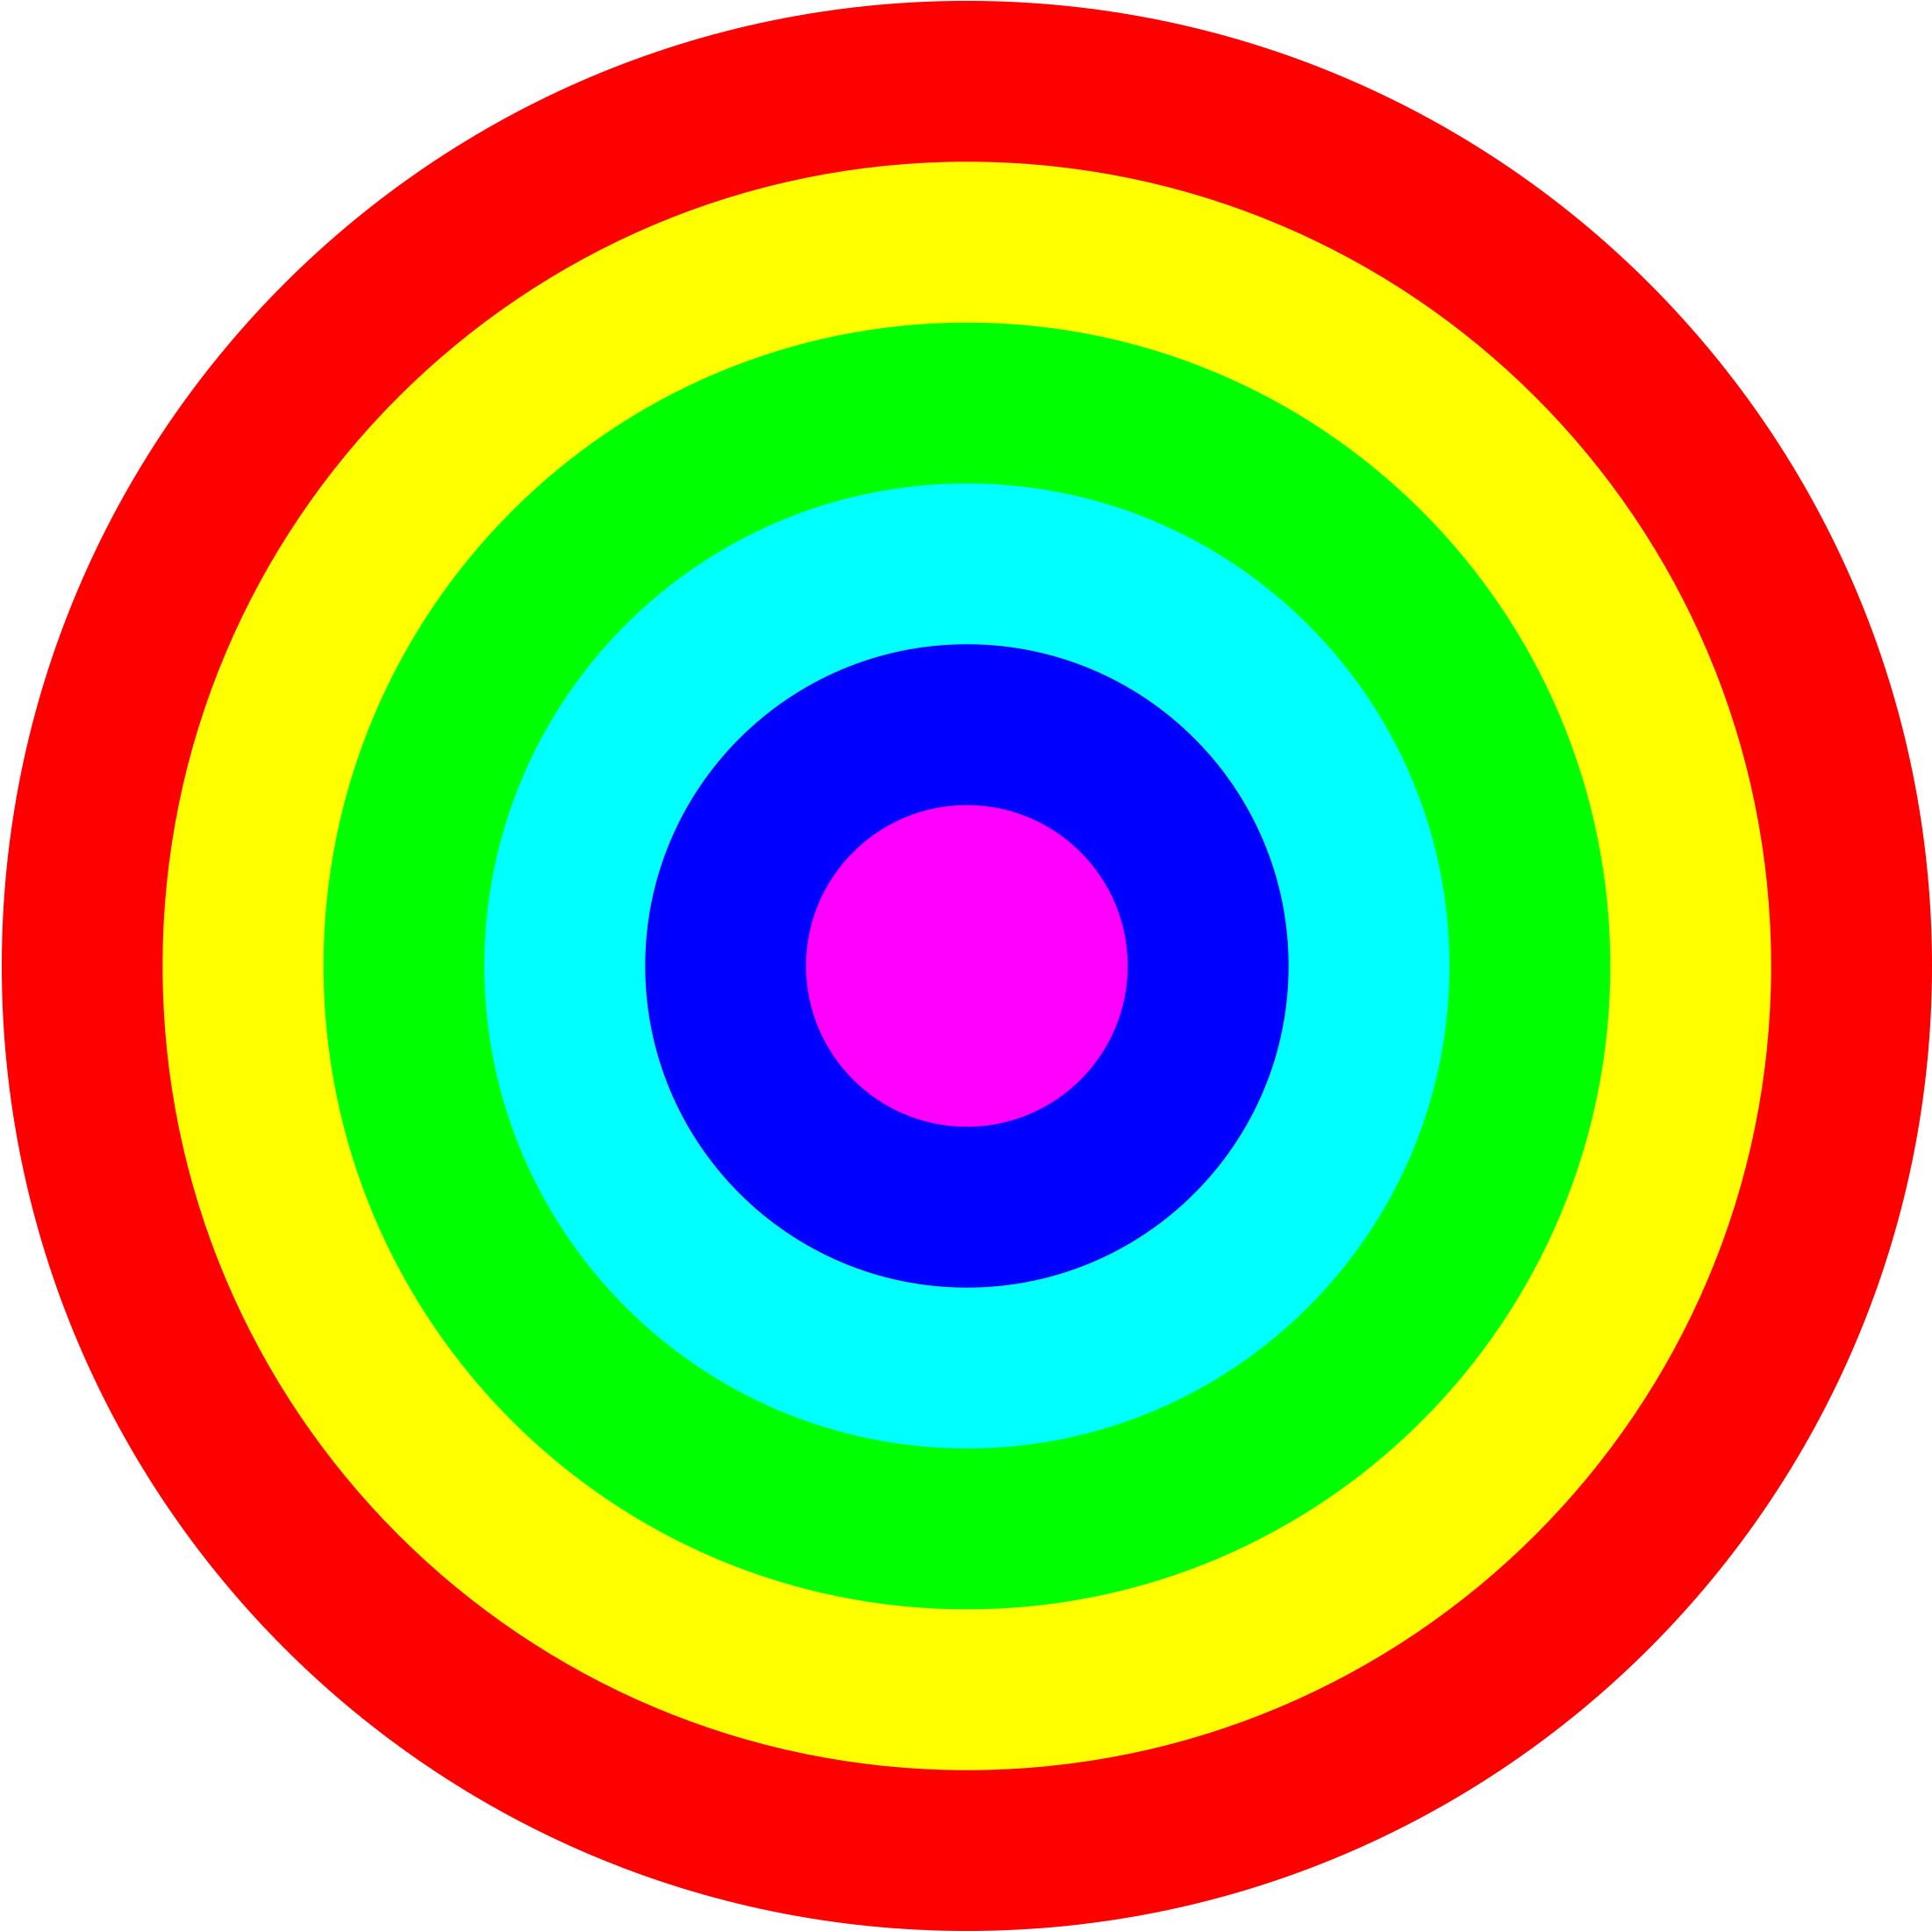 Rainbow circle png. Target color icons free